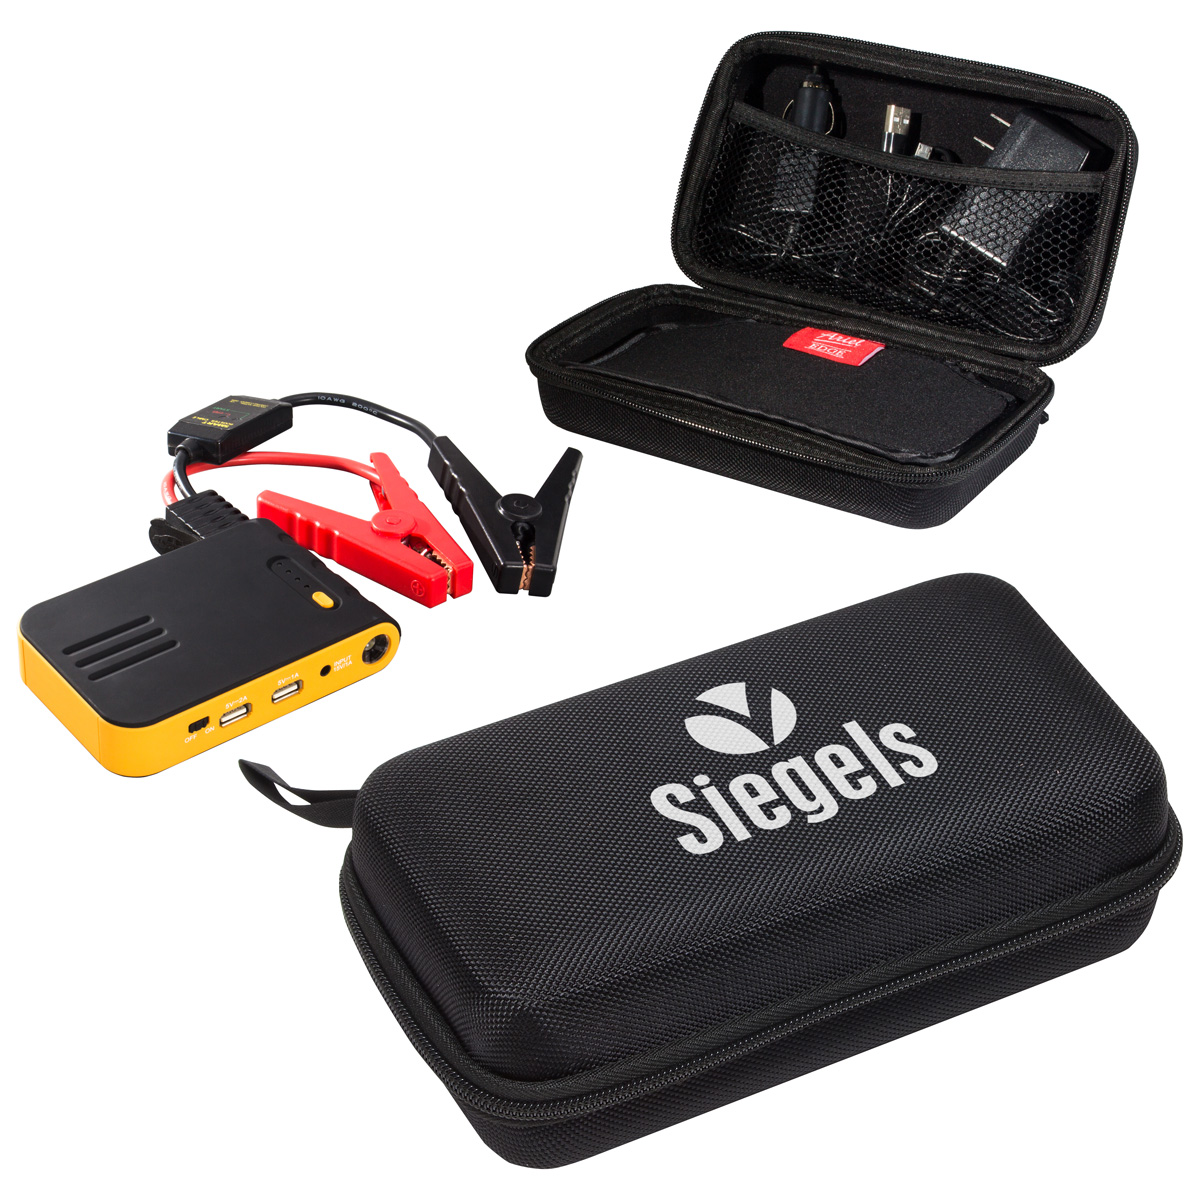 Dependable 8000 mAh Car Jump Starter, EPB-80D5 - 1 Colour Imprint